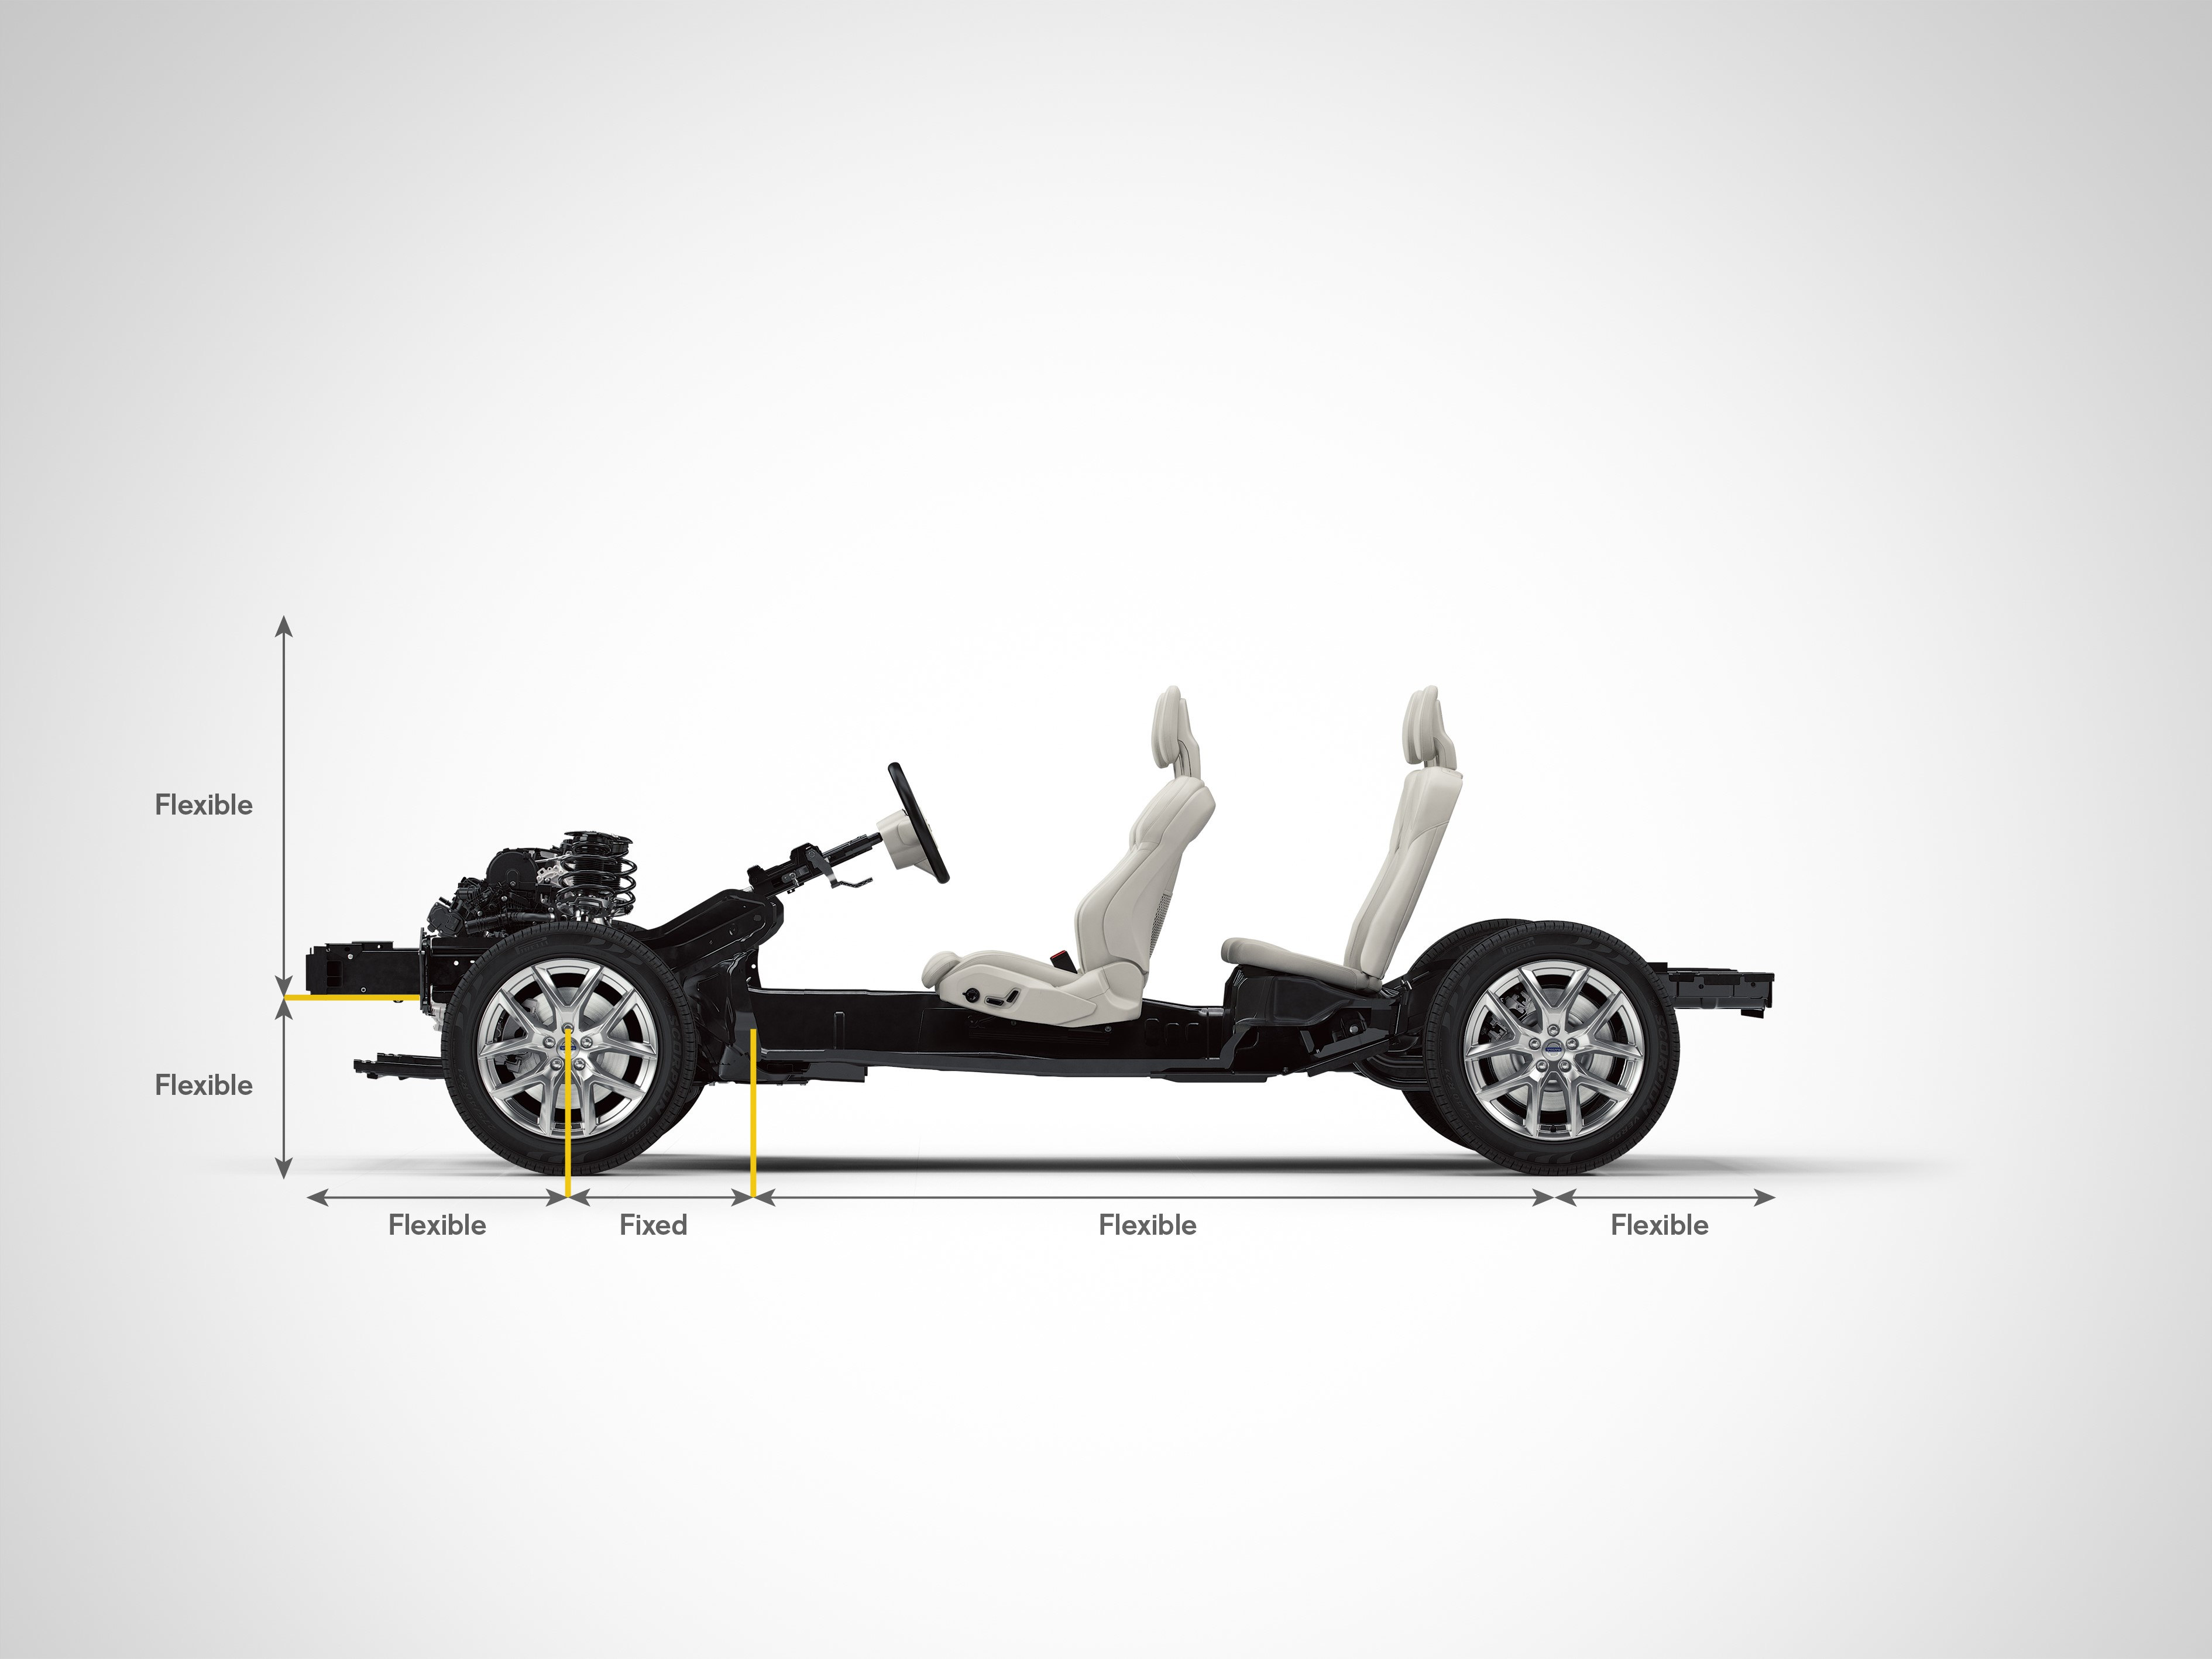 The XC40 uses Volvo's new Compact Modular Architecture.